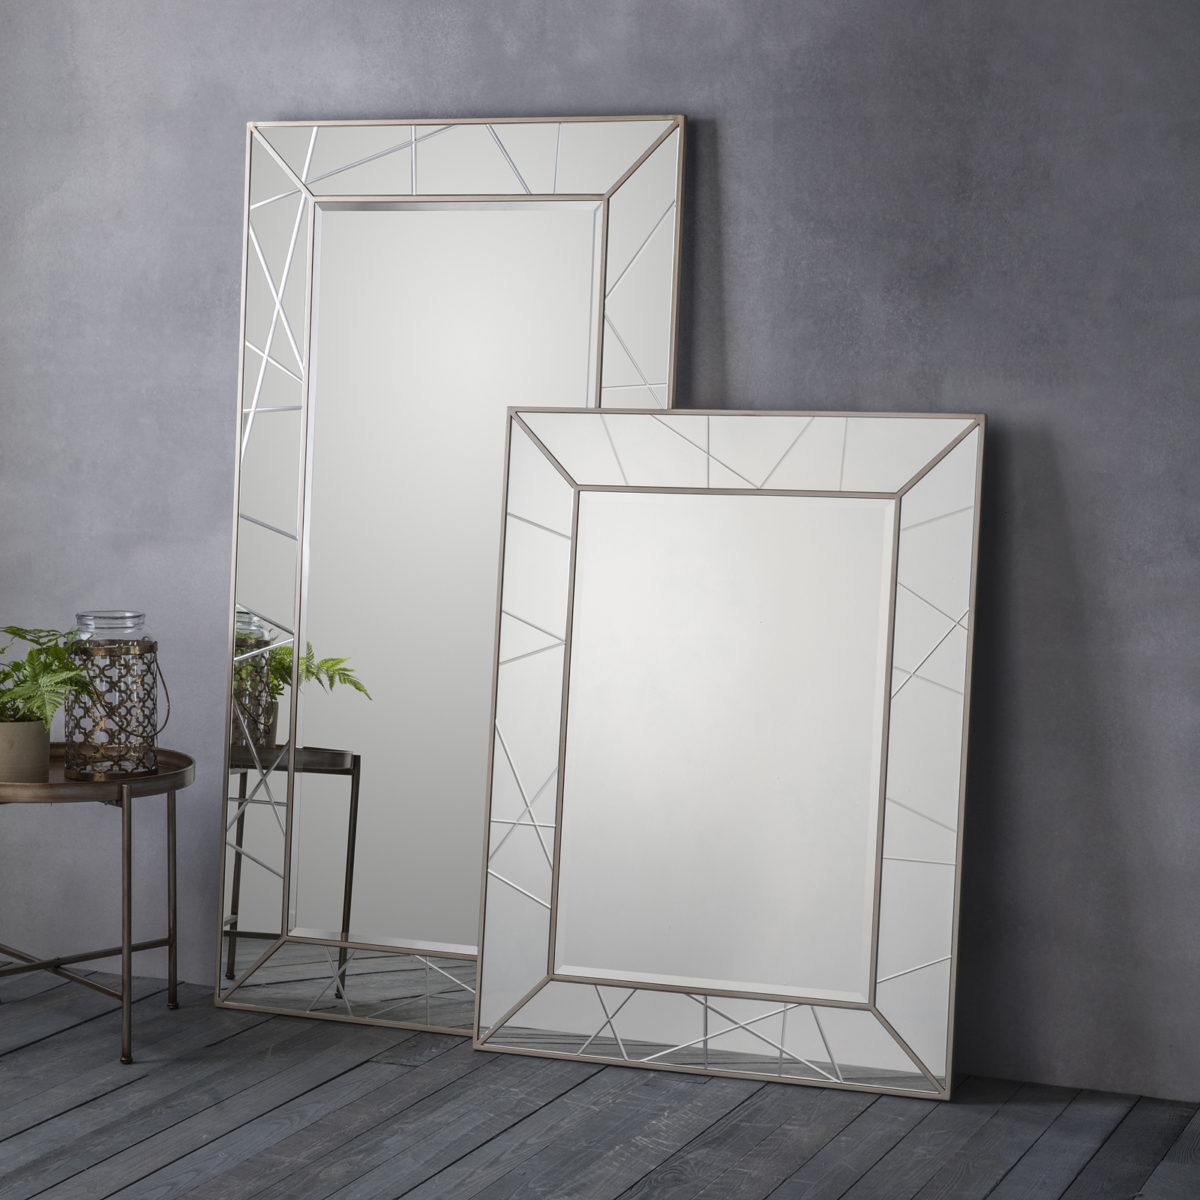 Trendy Floor To Wall Mirrors With Regard To All Glass Geometric Wall & Floor Standing Mirrors (View 4 of 20)